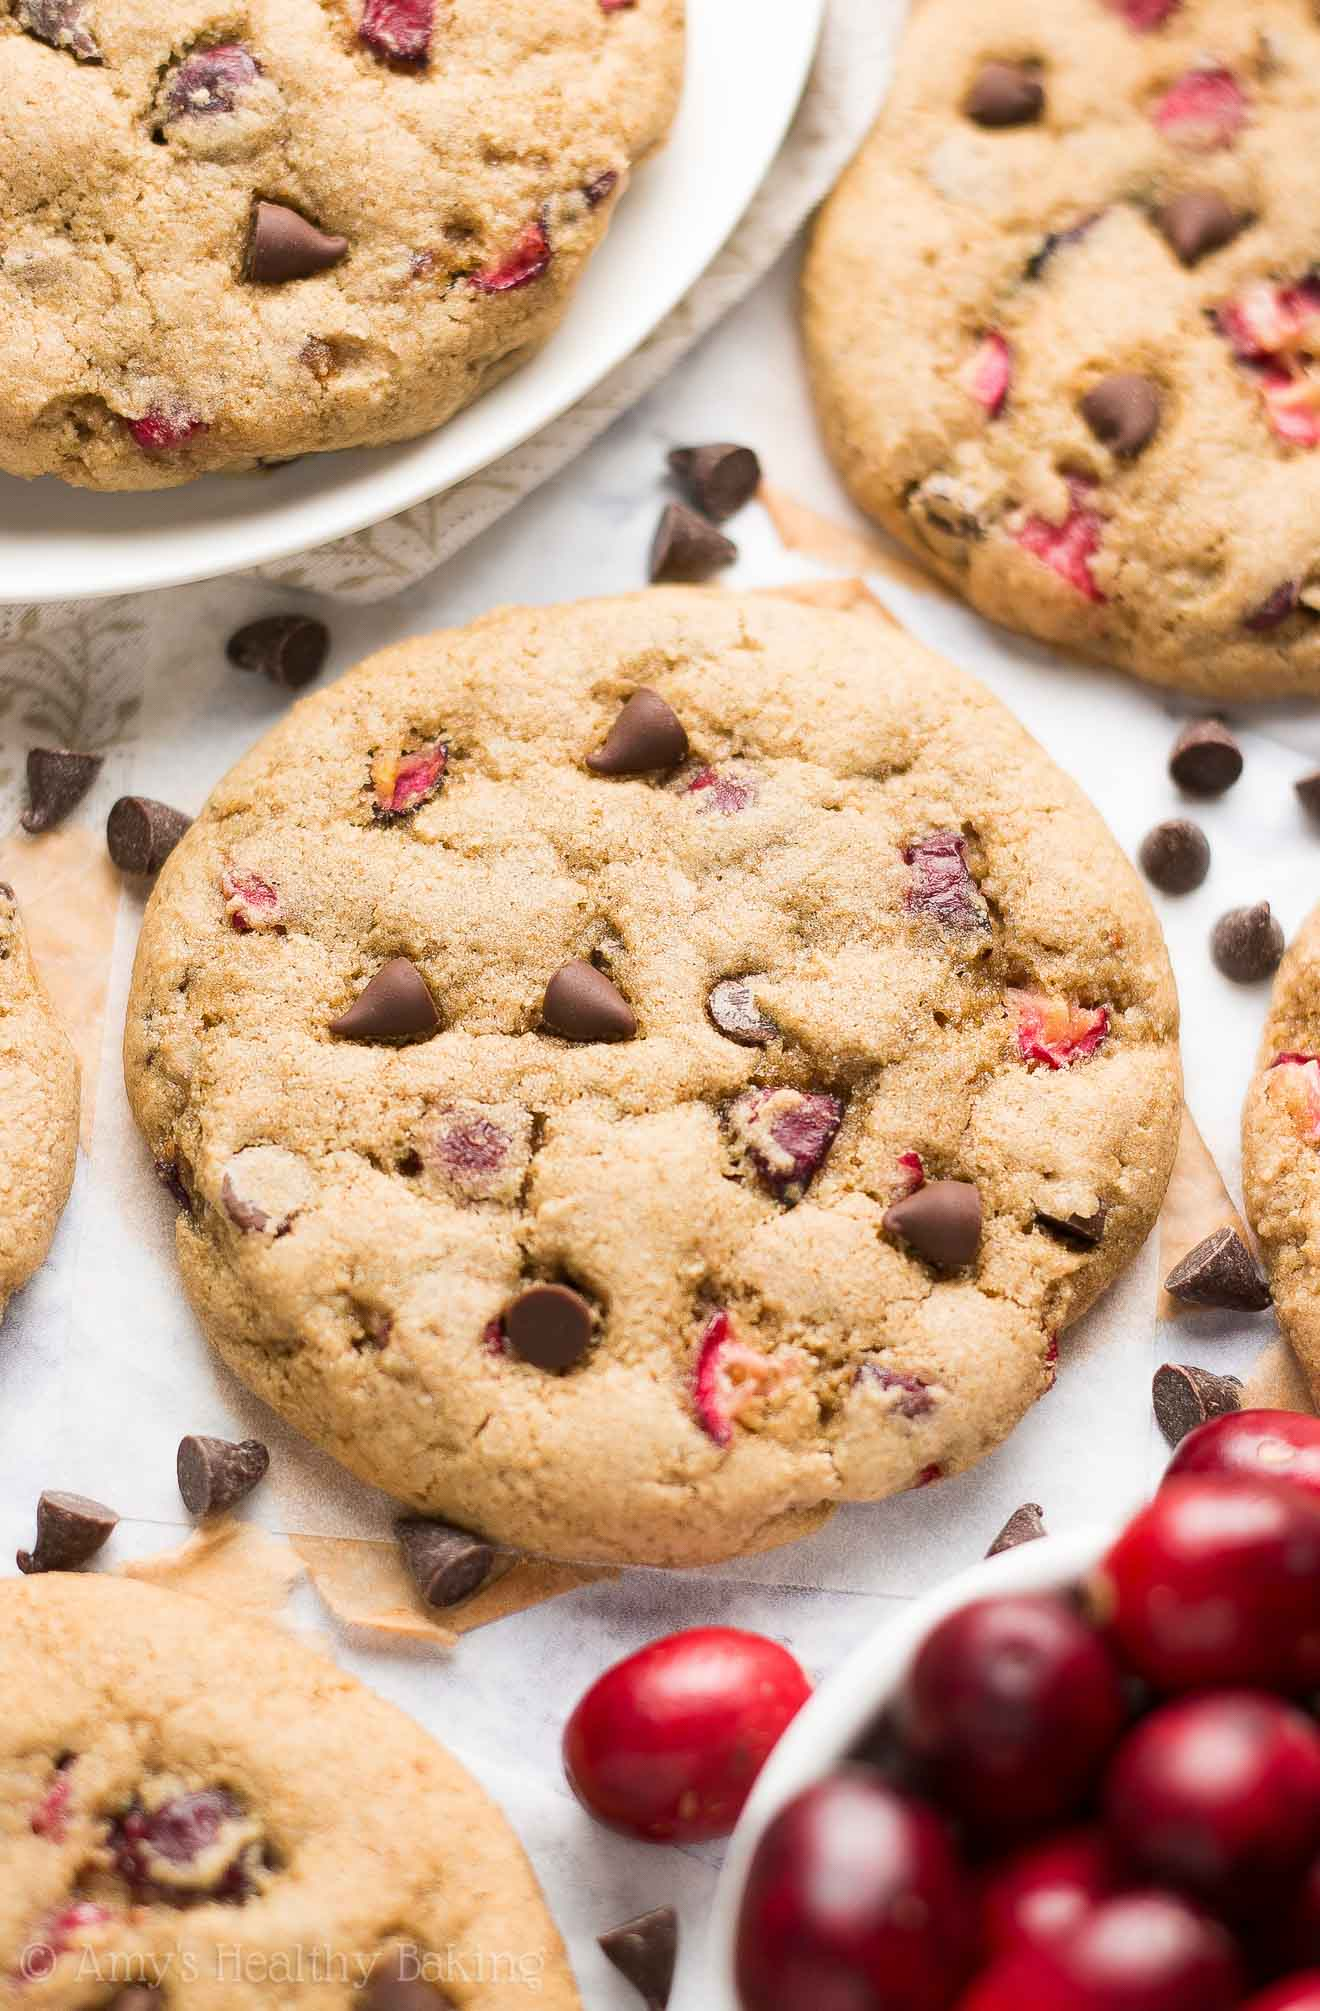 How To Mix Cookie Dough In A Food Processor